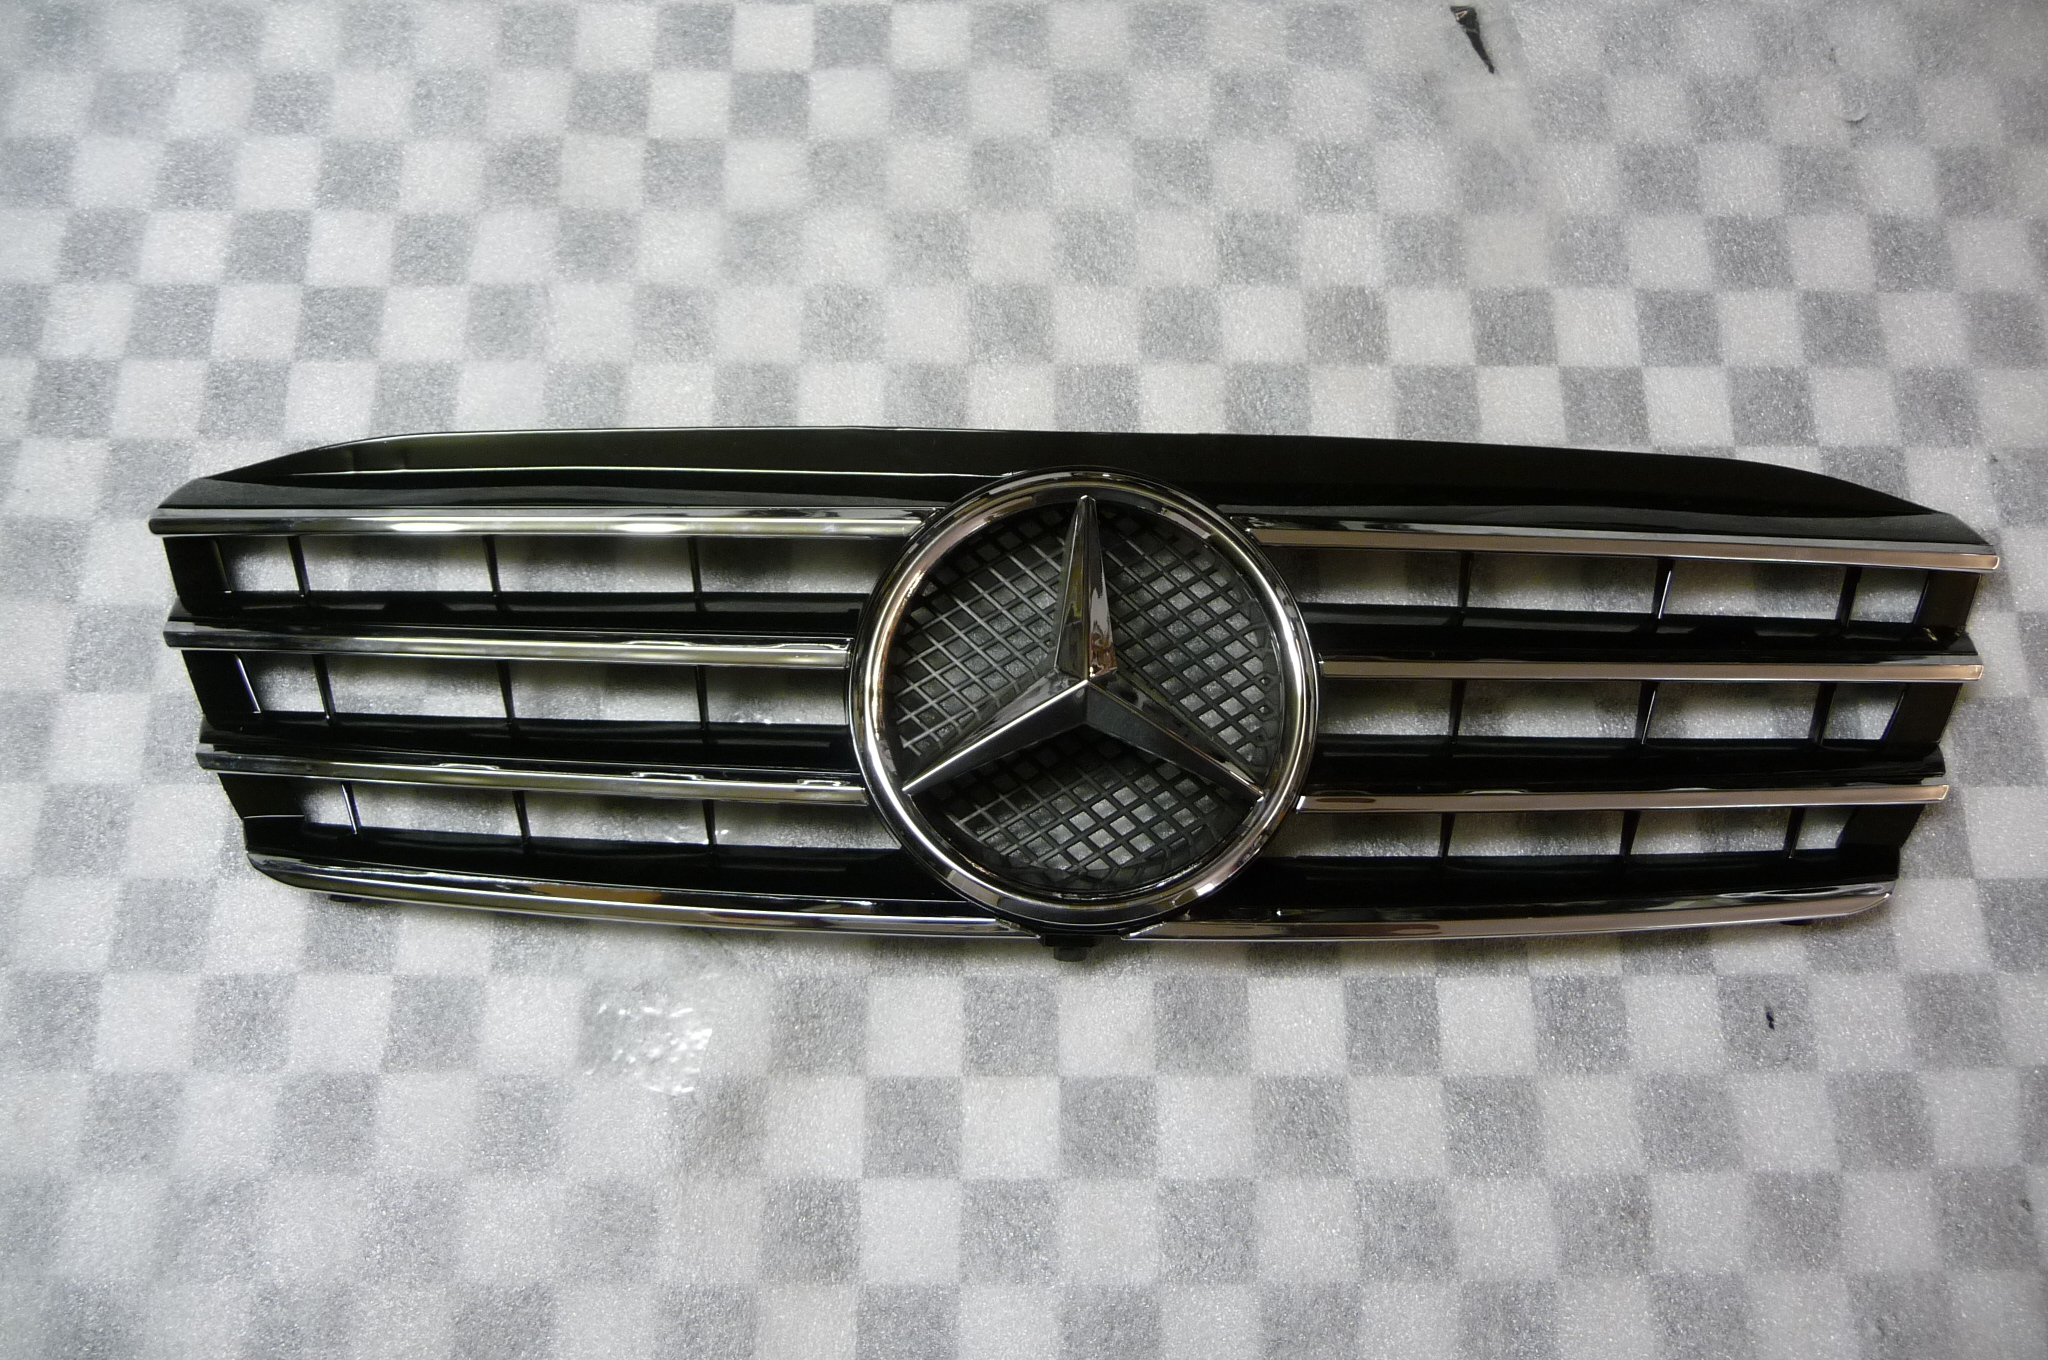 Mercedes Benz C Class W203 AMG SPORT Front Chrome Black Front Grill Grille